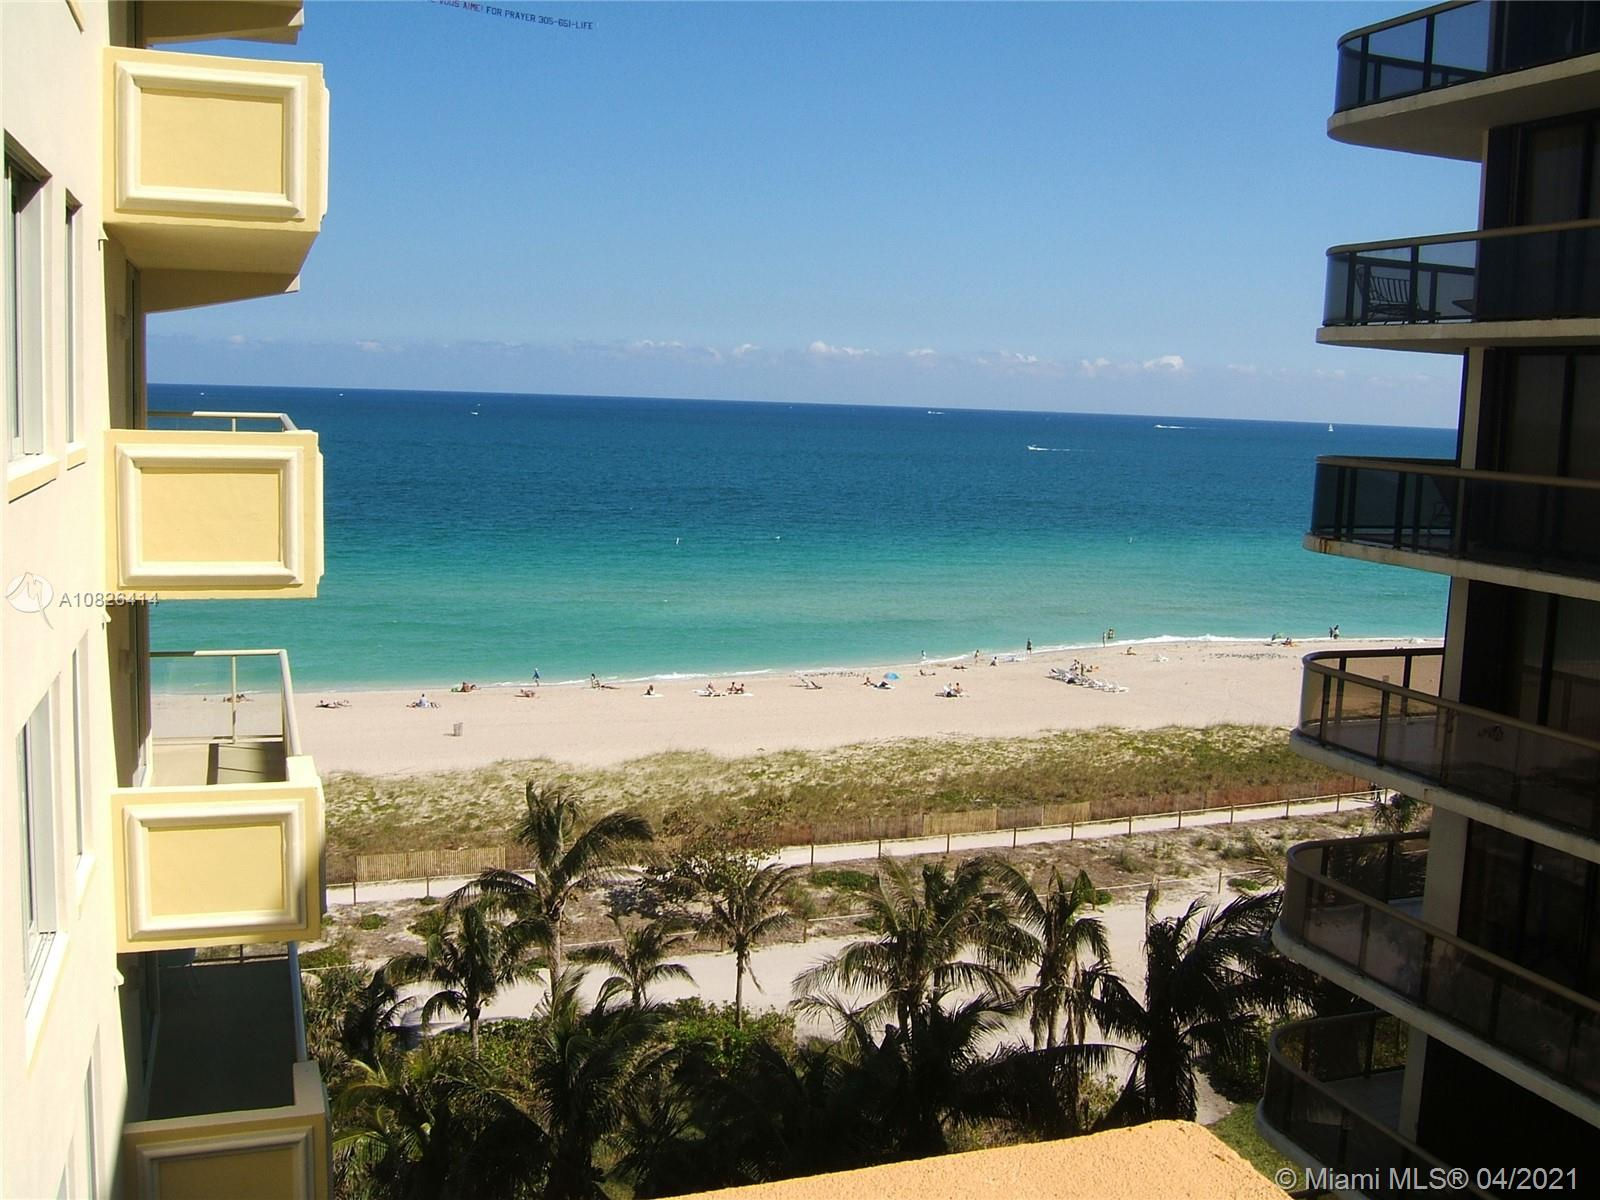 OCEANFRONT LUXURY CONDO WITH OCEAN VIEWS. 1 BEDROOM + DEN EASILY CONVERTIBLE TO SECOND BEDROOM, 2 COMPLETE BATHS, MARBLE FLOORS, EUROPEAN STYLE KITCHEN WITH STAINLESS STEEL APPLIANCES AND GRANITE COUNTER TOPS. WASHER & DRYER INSIDE UNIT. PRIVATE BEACH, POOL, HEALTH CLUB, CONCIERGE AND VALET 24HS. WALKING DISTANCE TO SHOPS, MARKET, RESTAURANTS. 2 BLOCKS FROM BAL HARBOUR SHOP. FANTASTIC OPPORTUNITY!  PERFECT FOR VACATIONS! VERY EASY TO SHOW. CALL AGENT FOR MORE DETAILS.